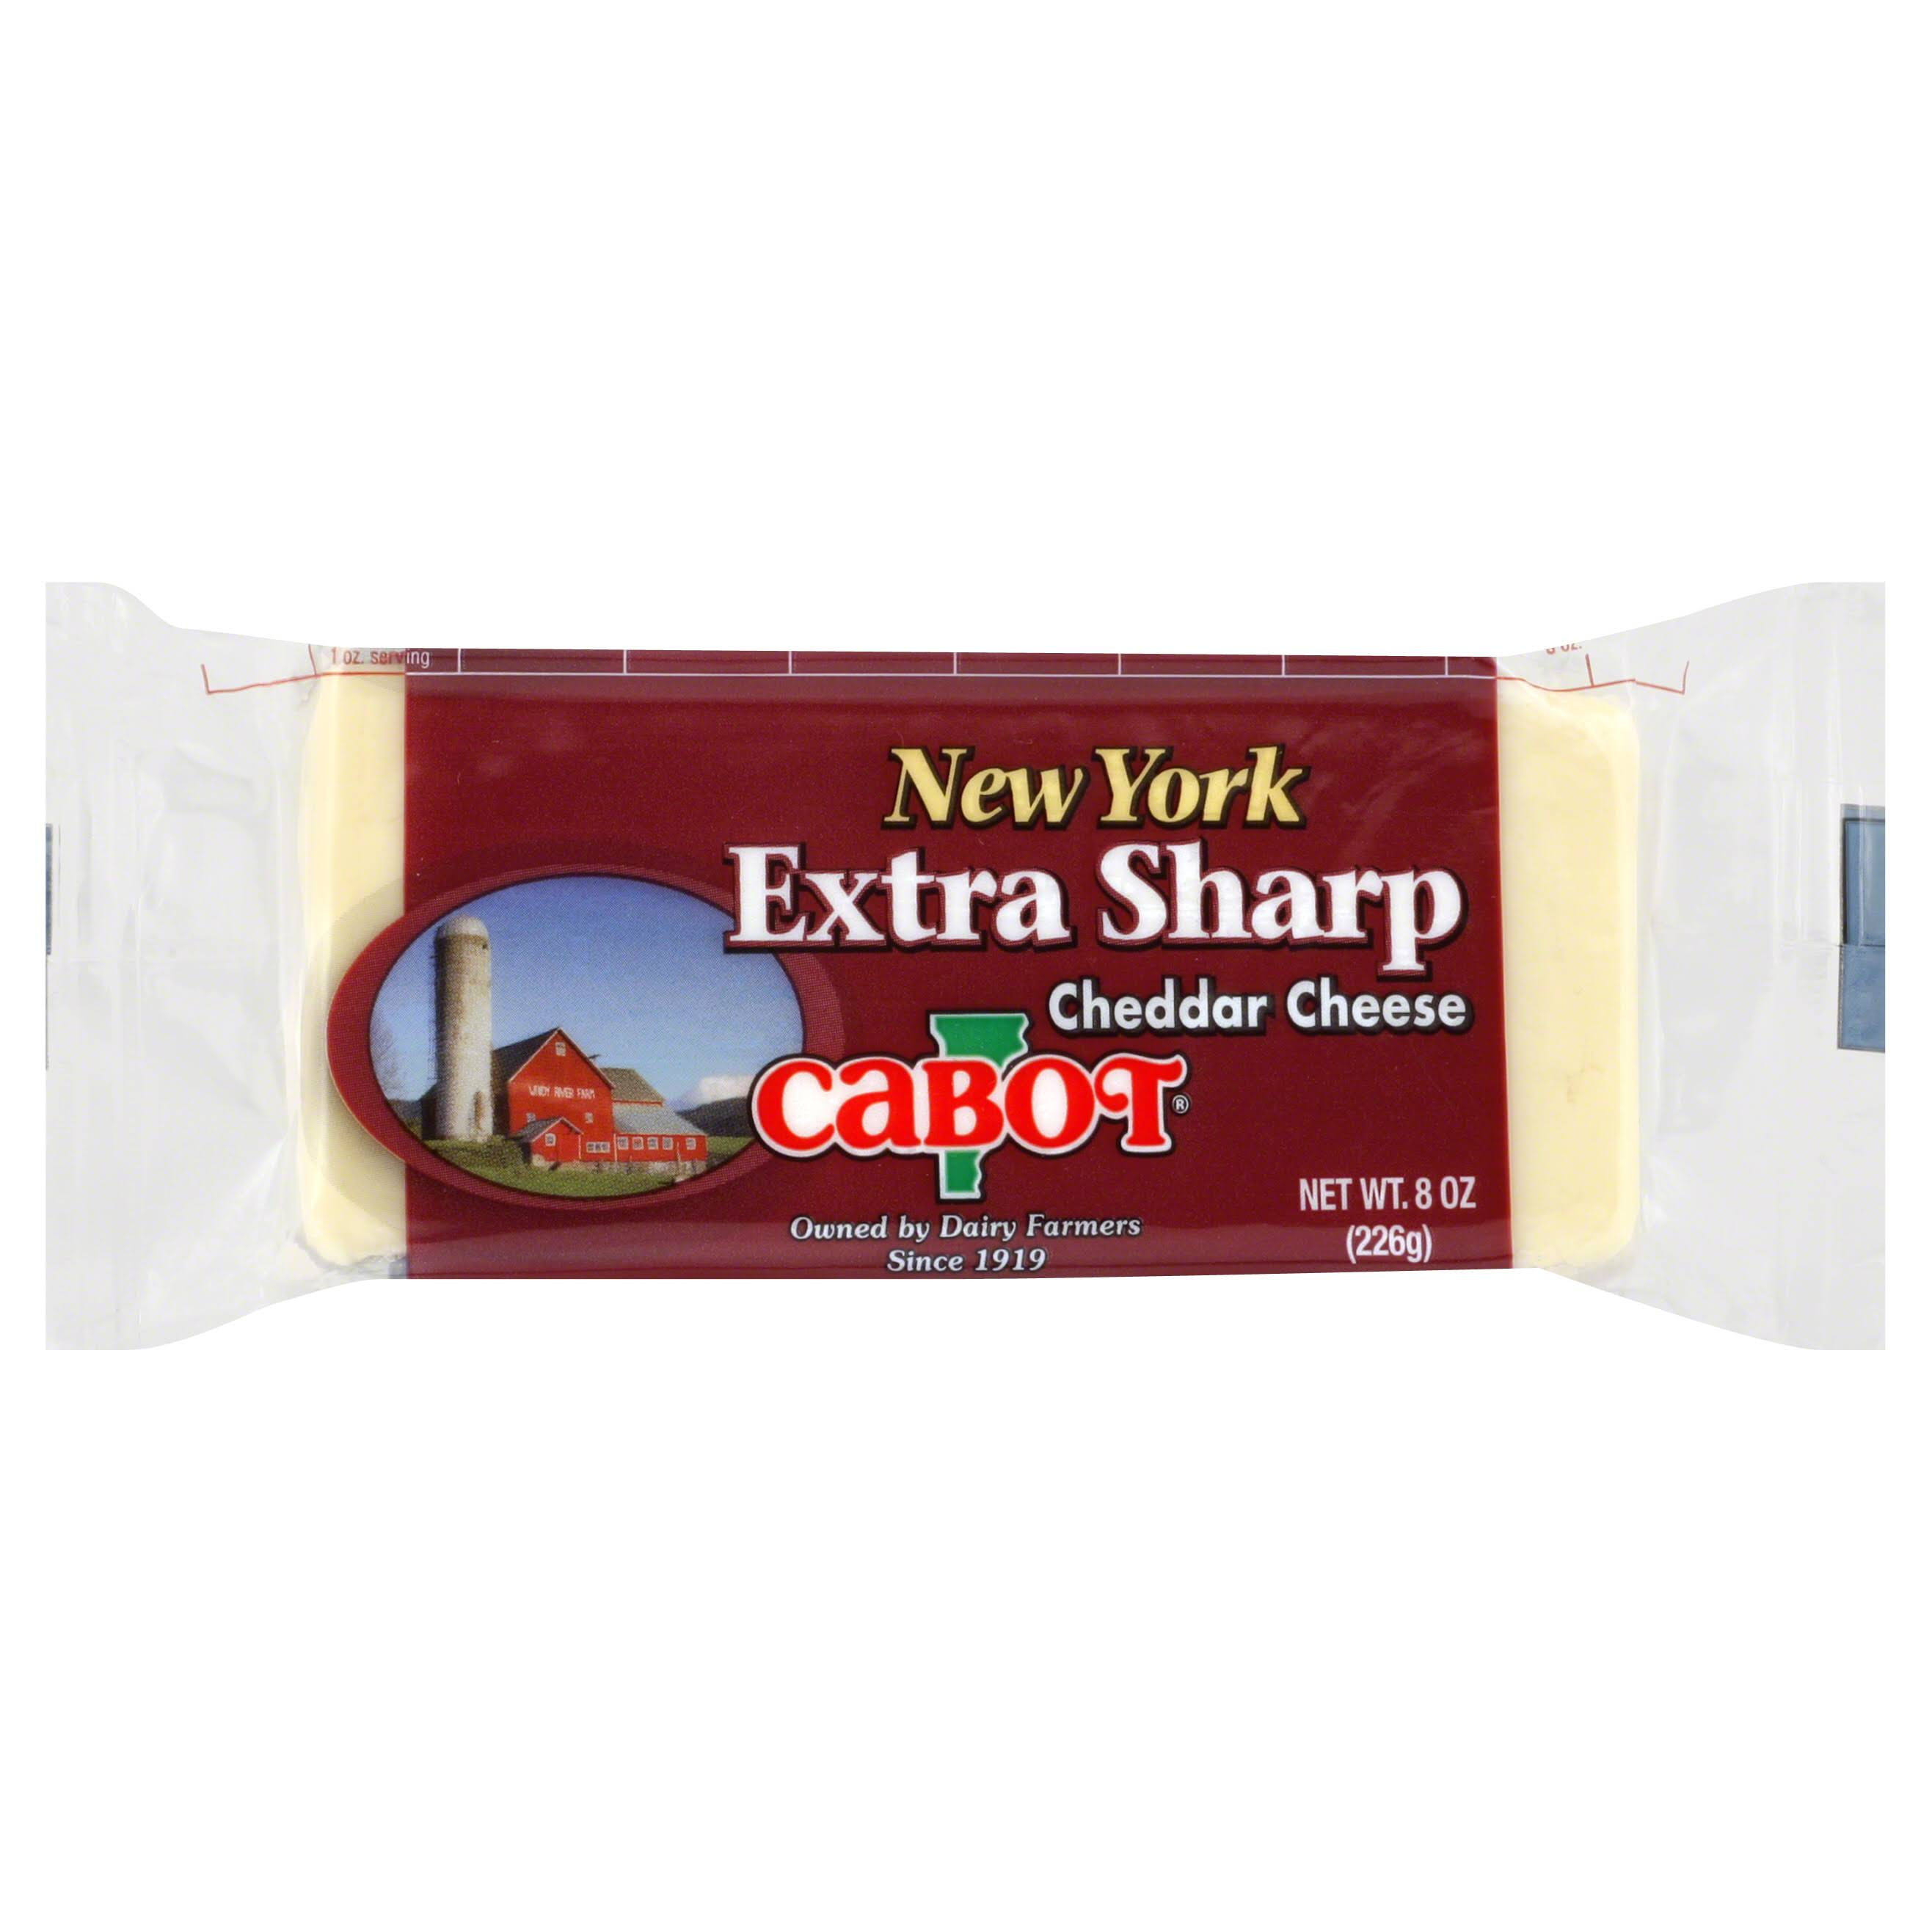 Cabot Extra Sharp Cheddar Cheese - New York, 8oz